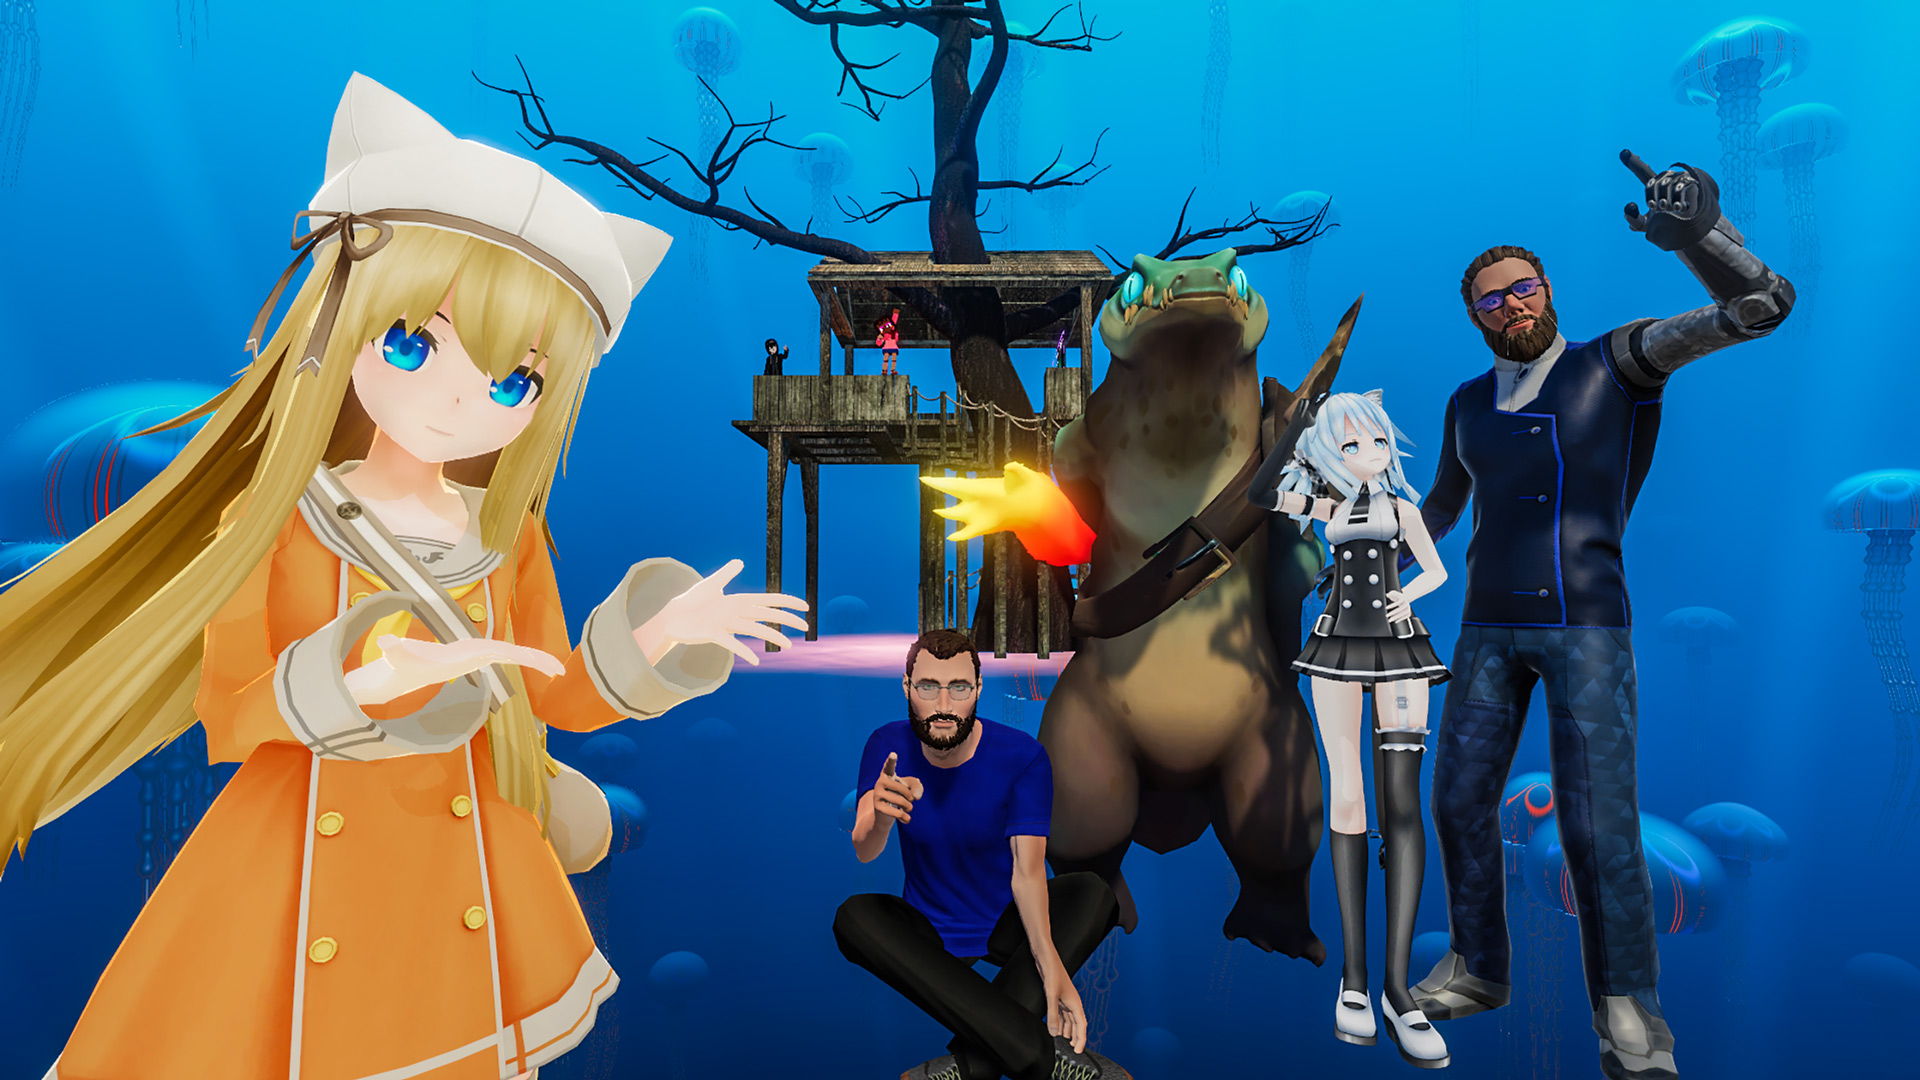 Social VR App 'VRChat' is Seeing Record Usage Amidst the Pandemic